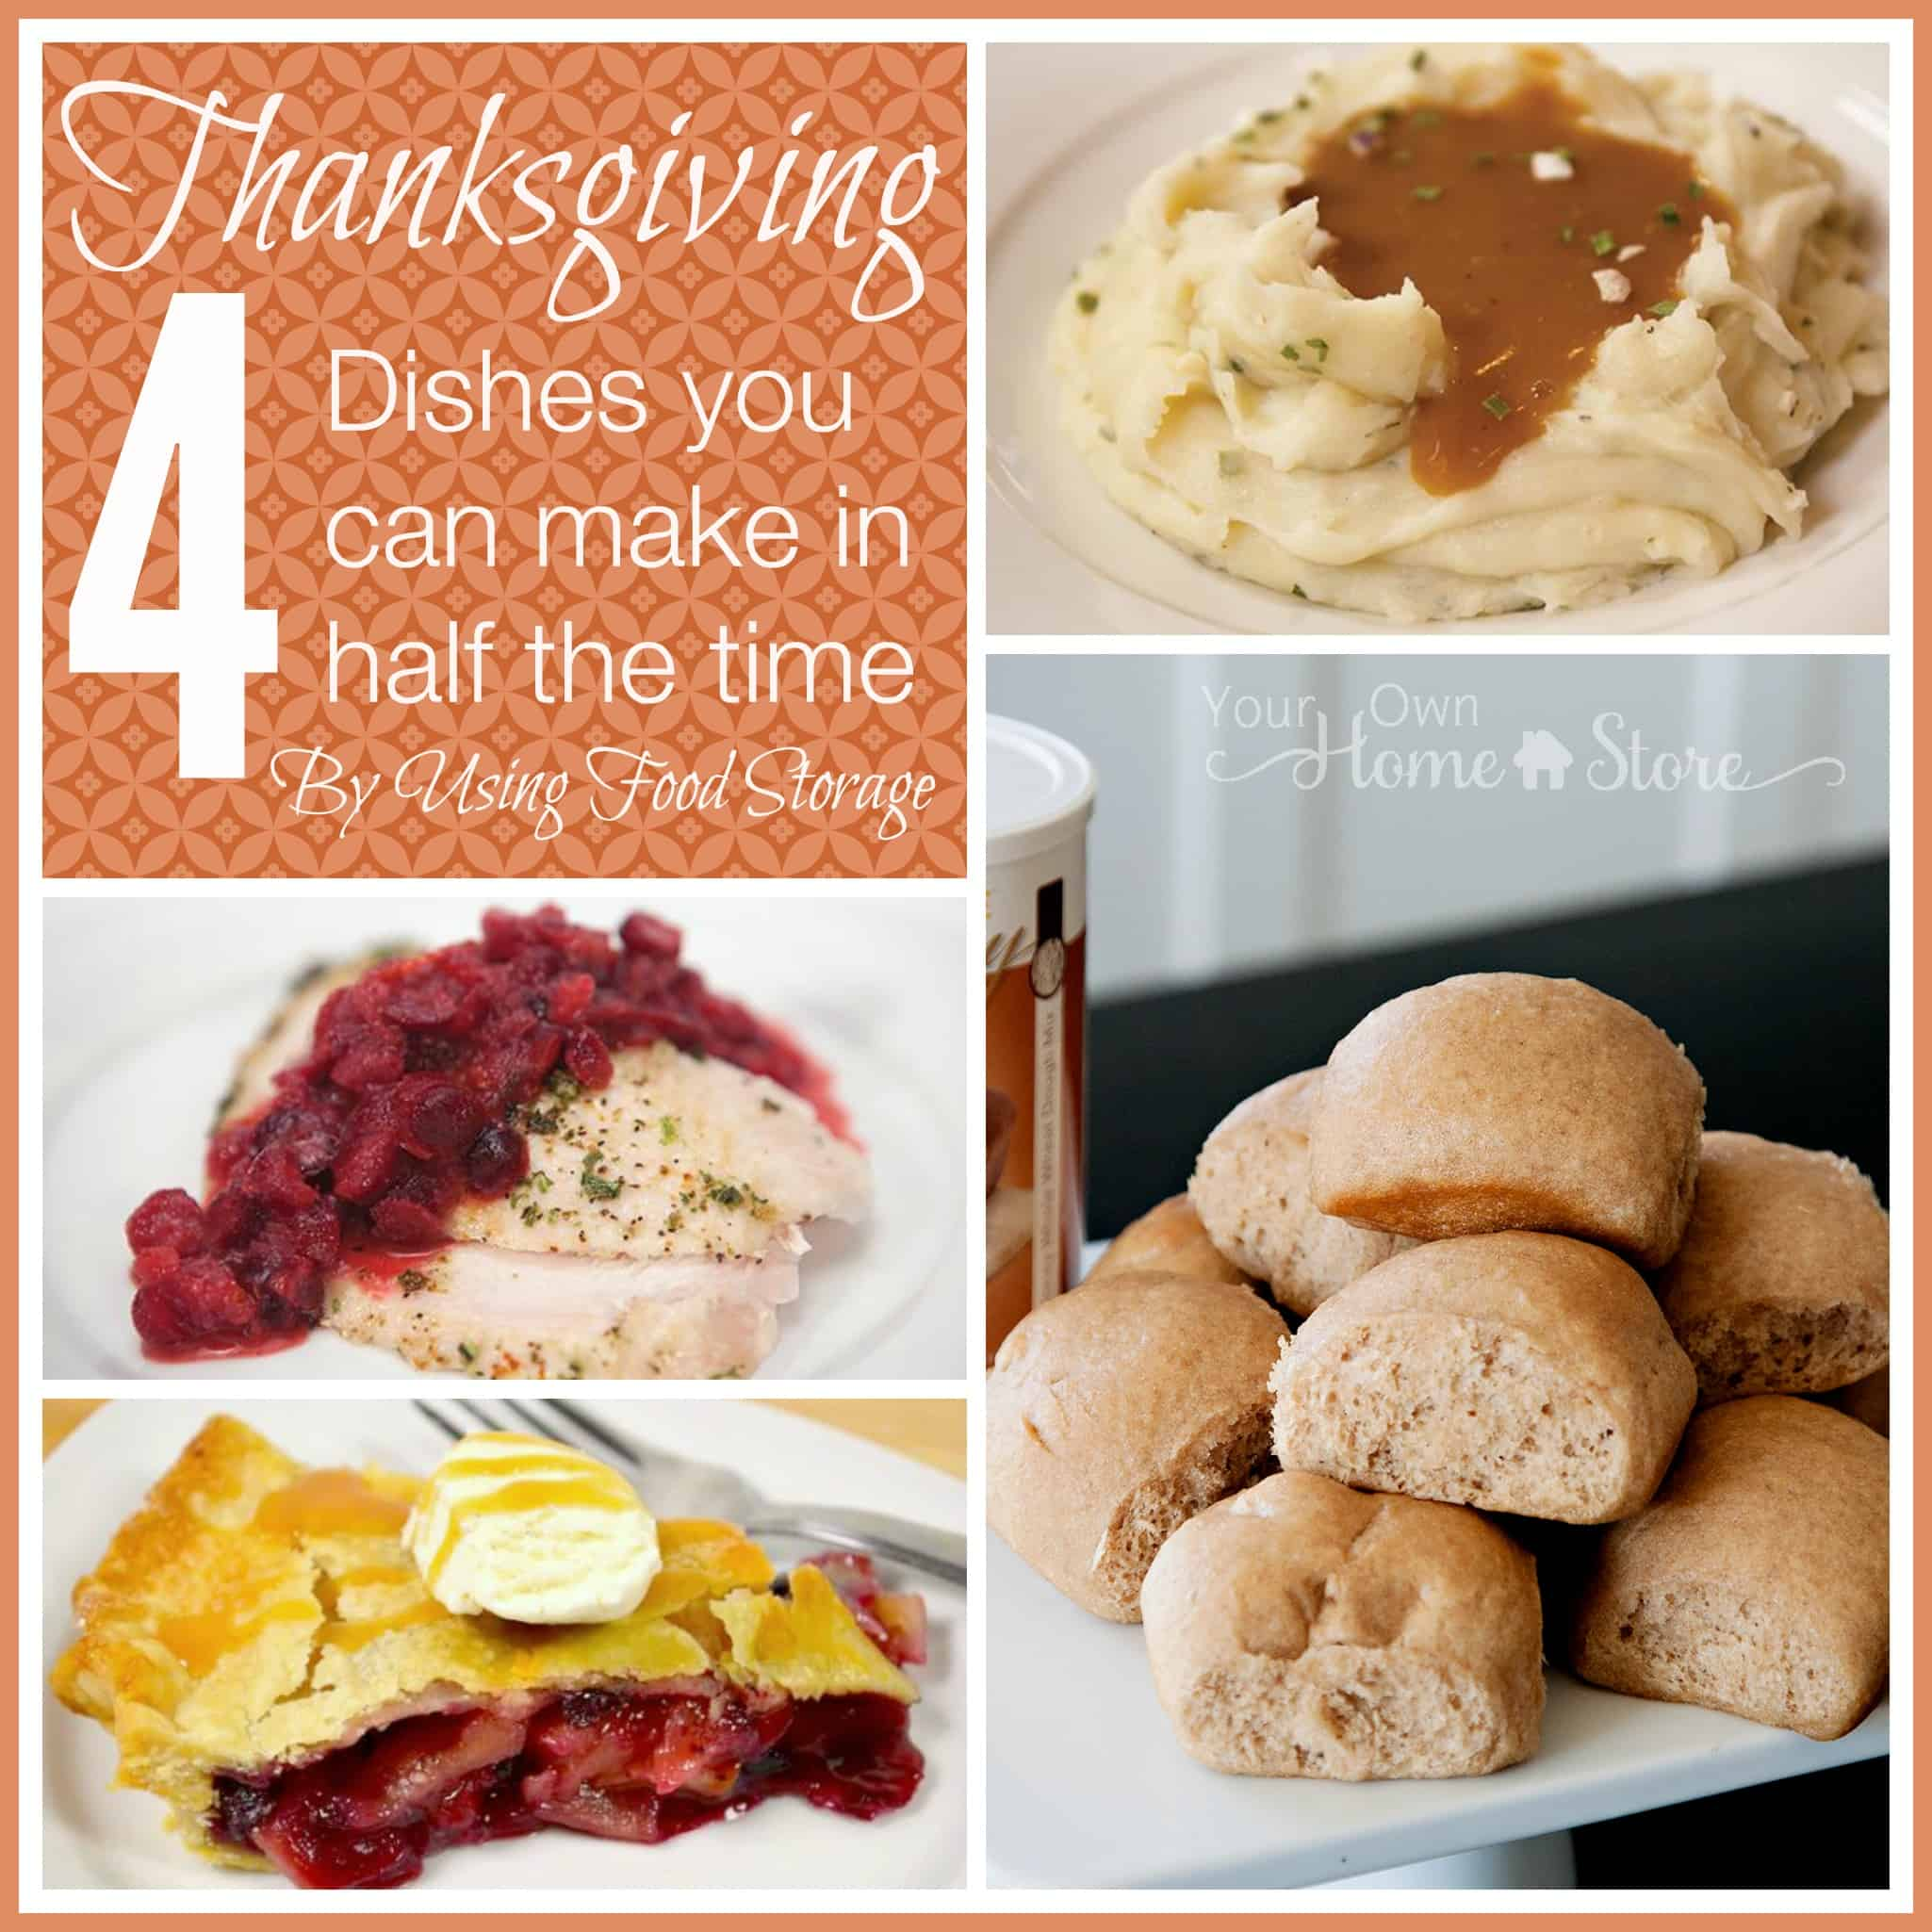 Thanksgiving time savers: 4 Dishes you can make in half the time when you use food storage